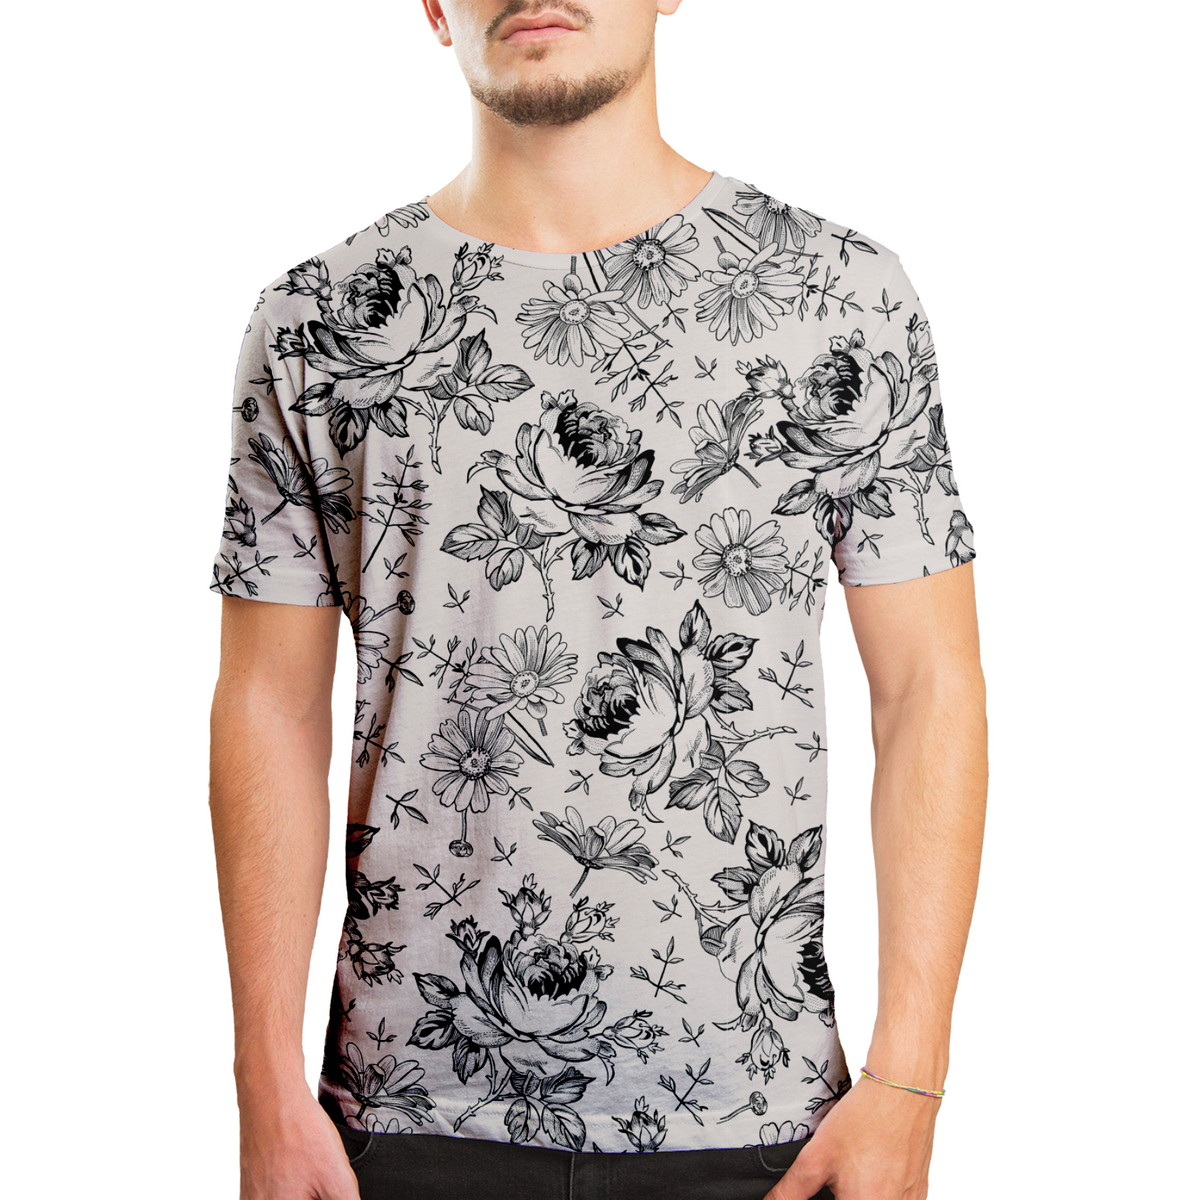 a493f24c2a612 Camiseta Masculina Flores Selvagens Estampa Digital no Elo7   Over ...